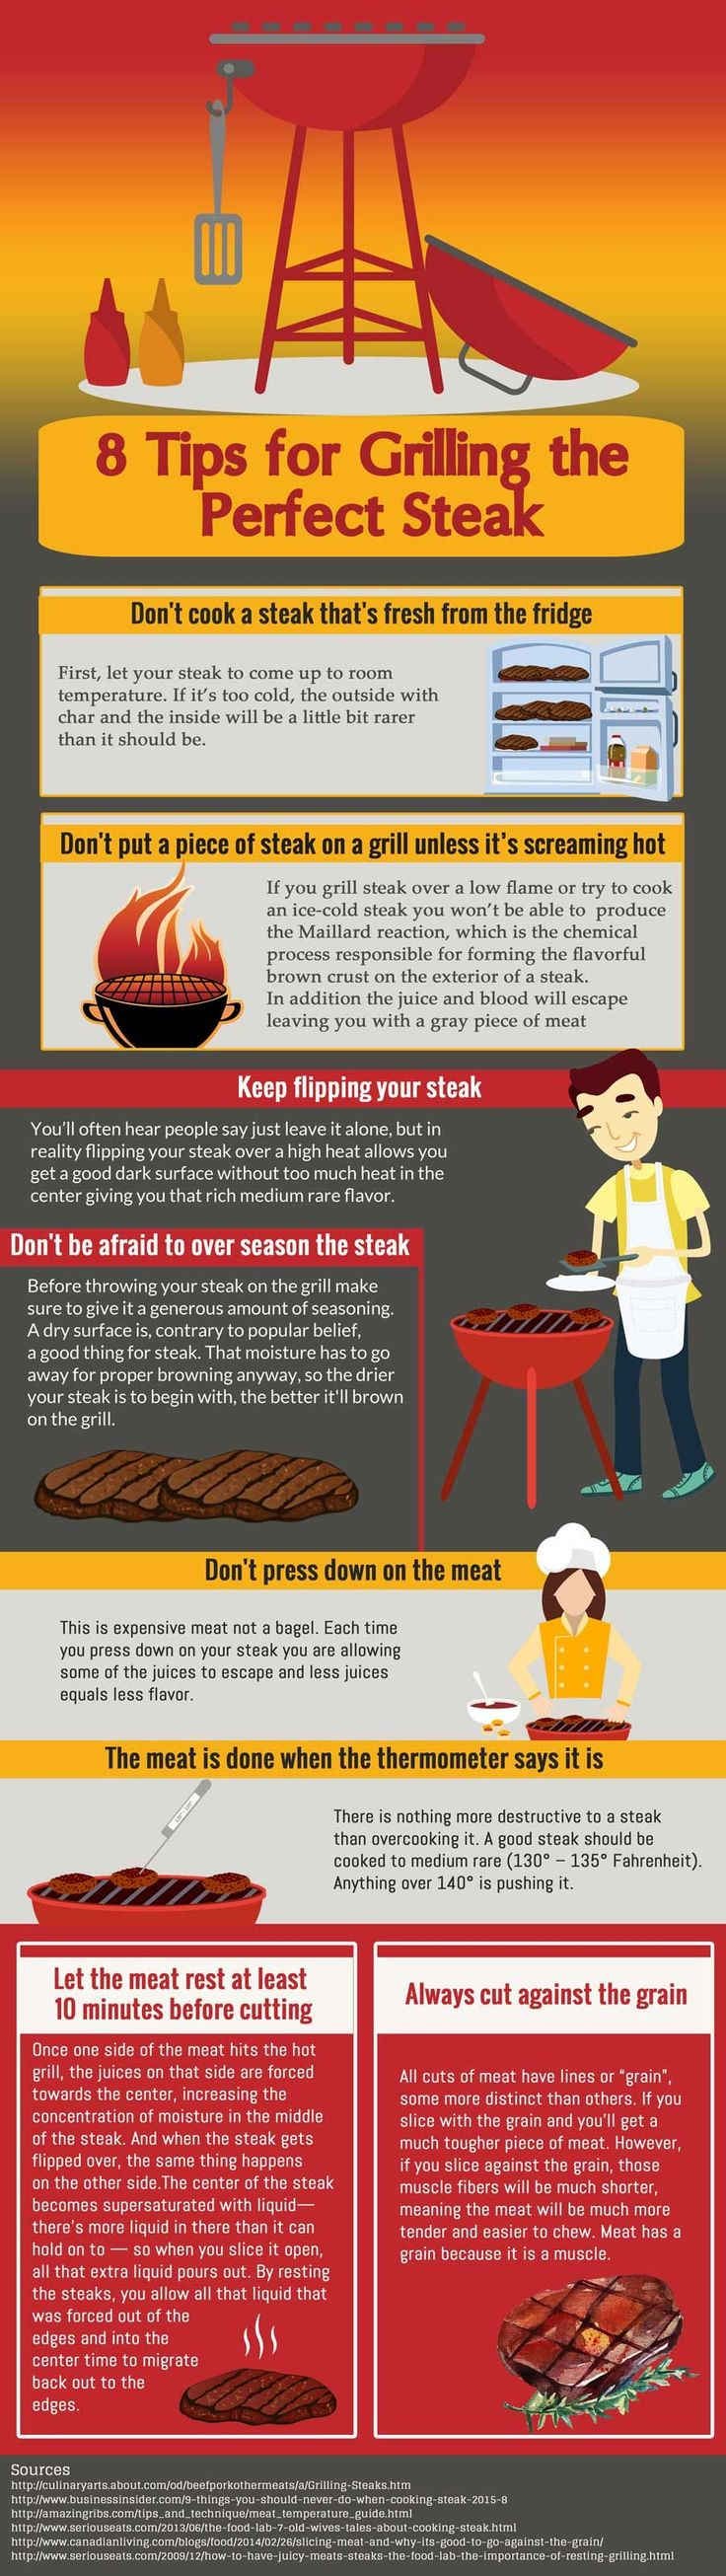 8 Steps To Grilling The Perfect Steak #infographic #infografía